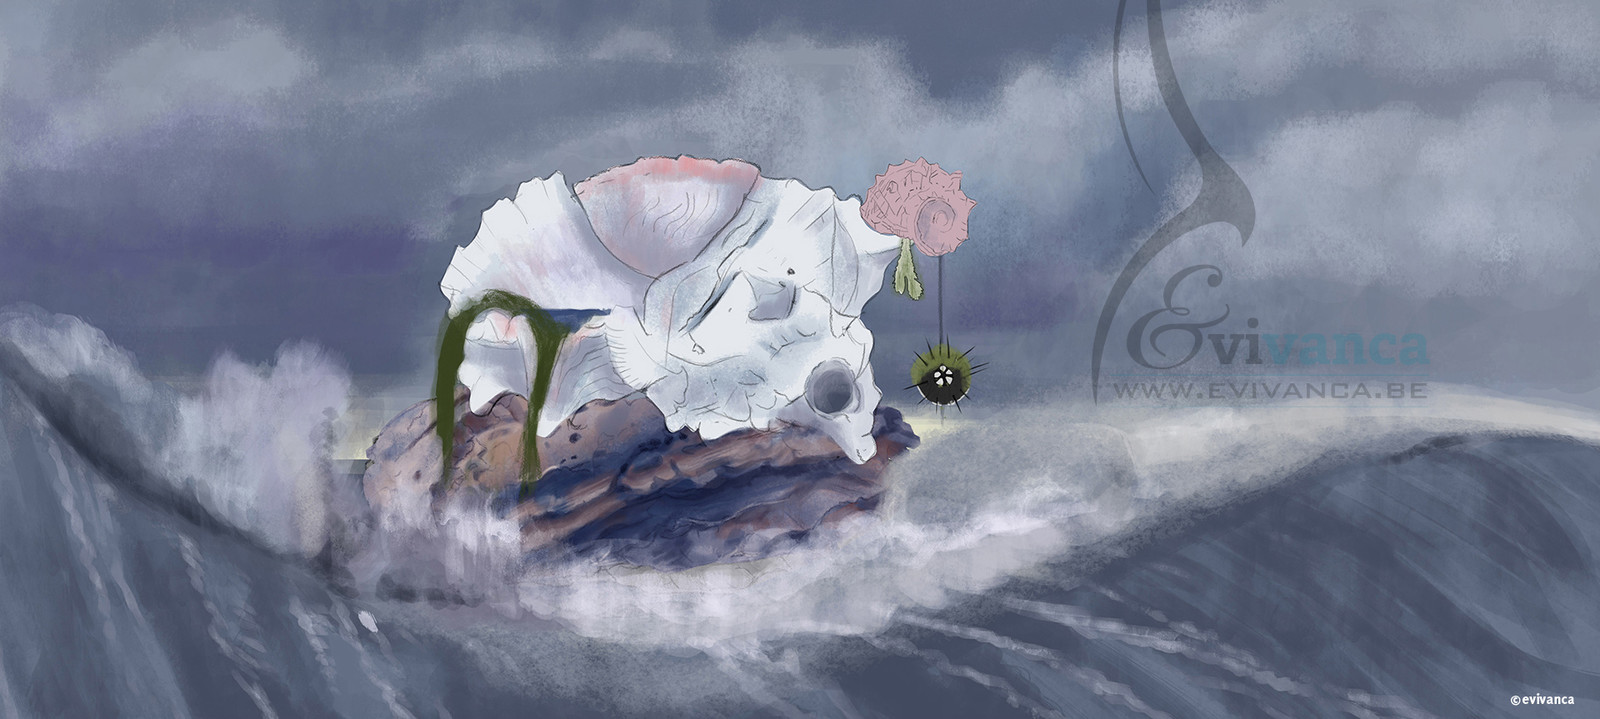 Concept art for calusa shell city  - situation during the flood